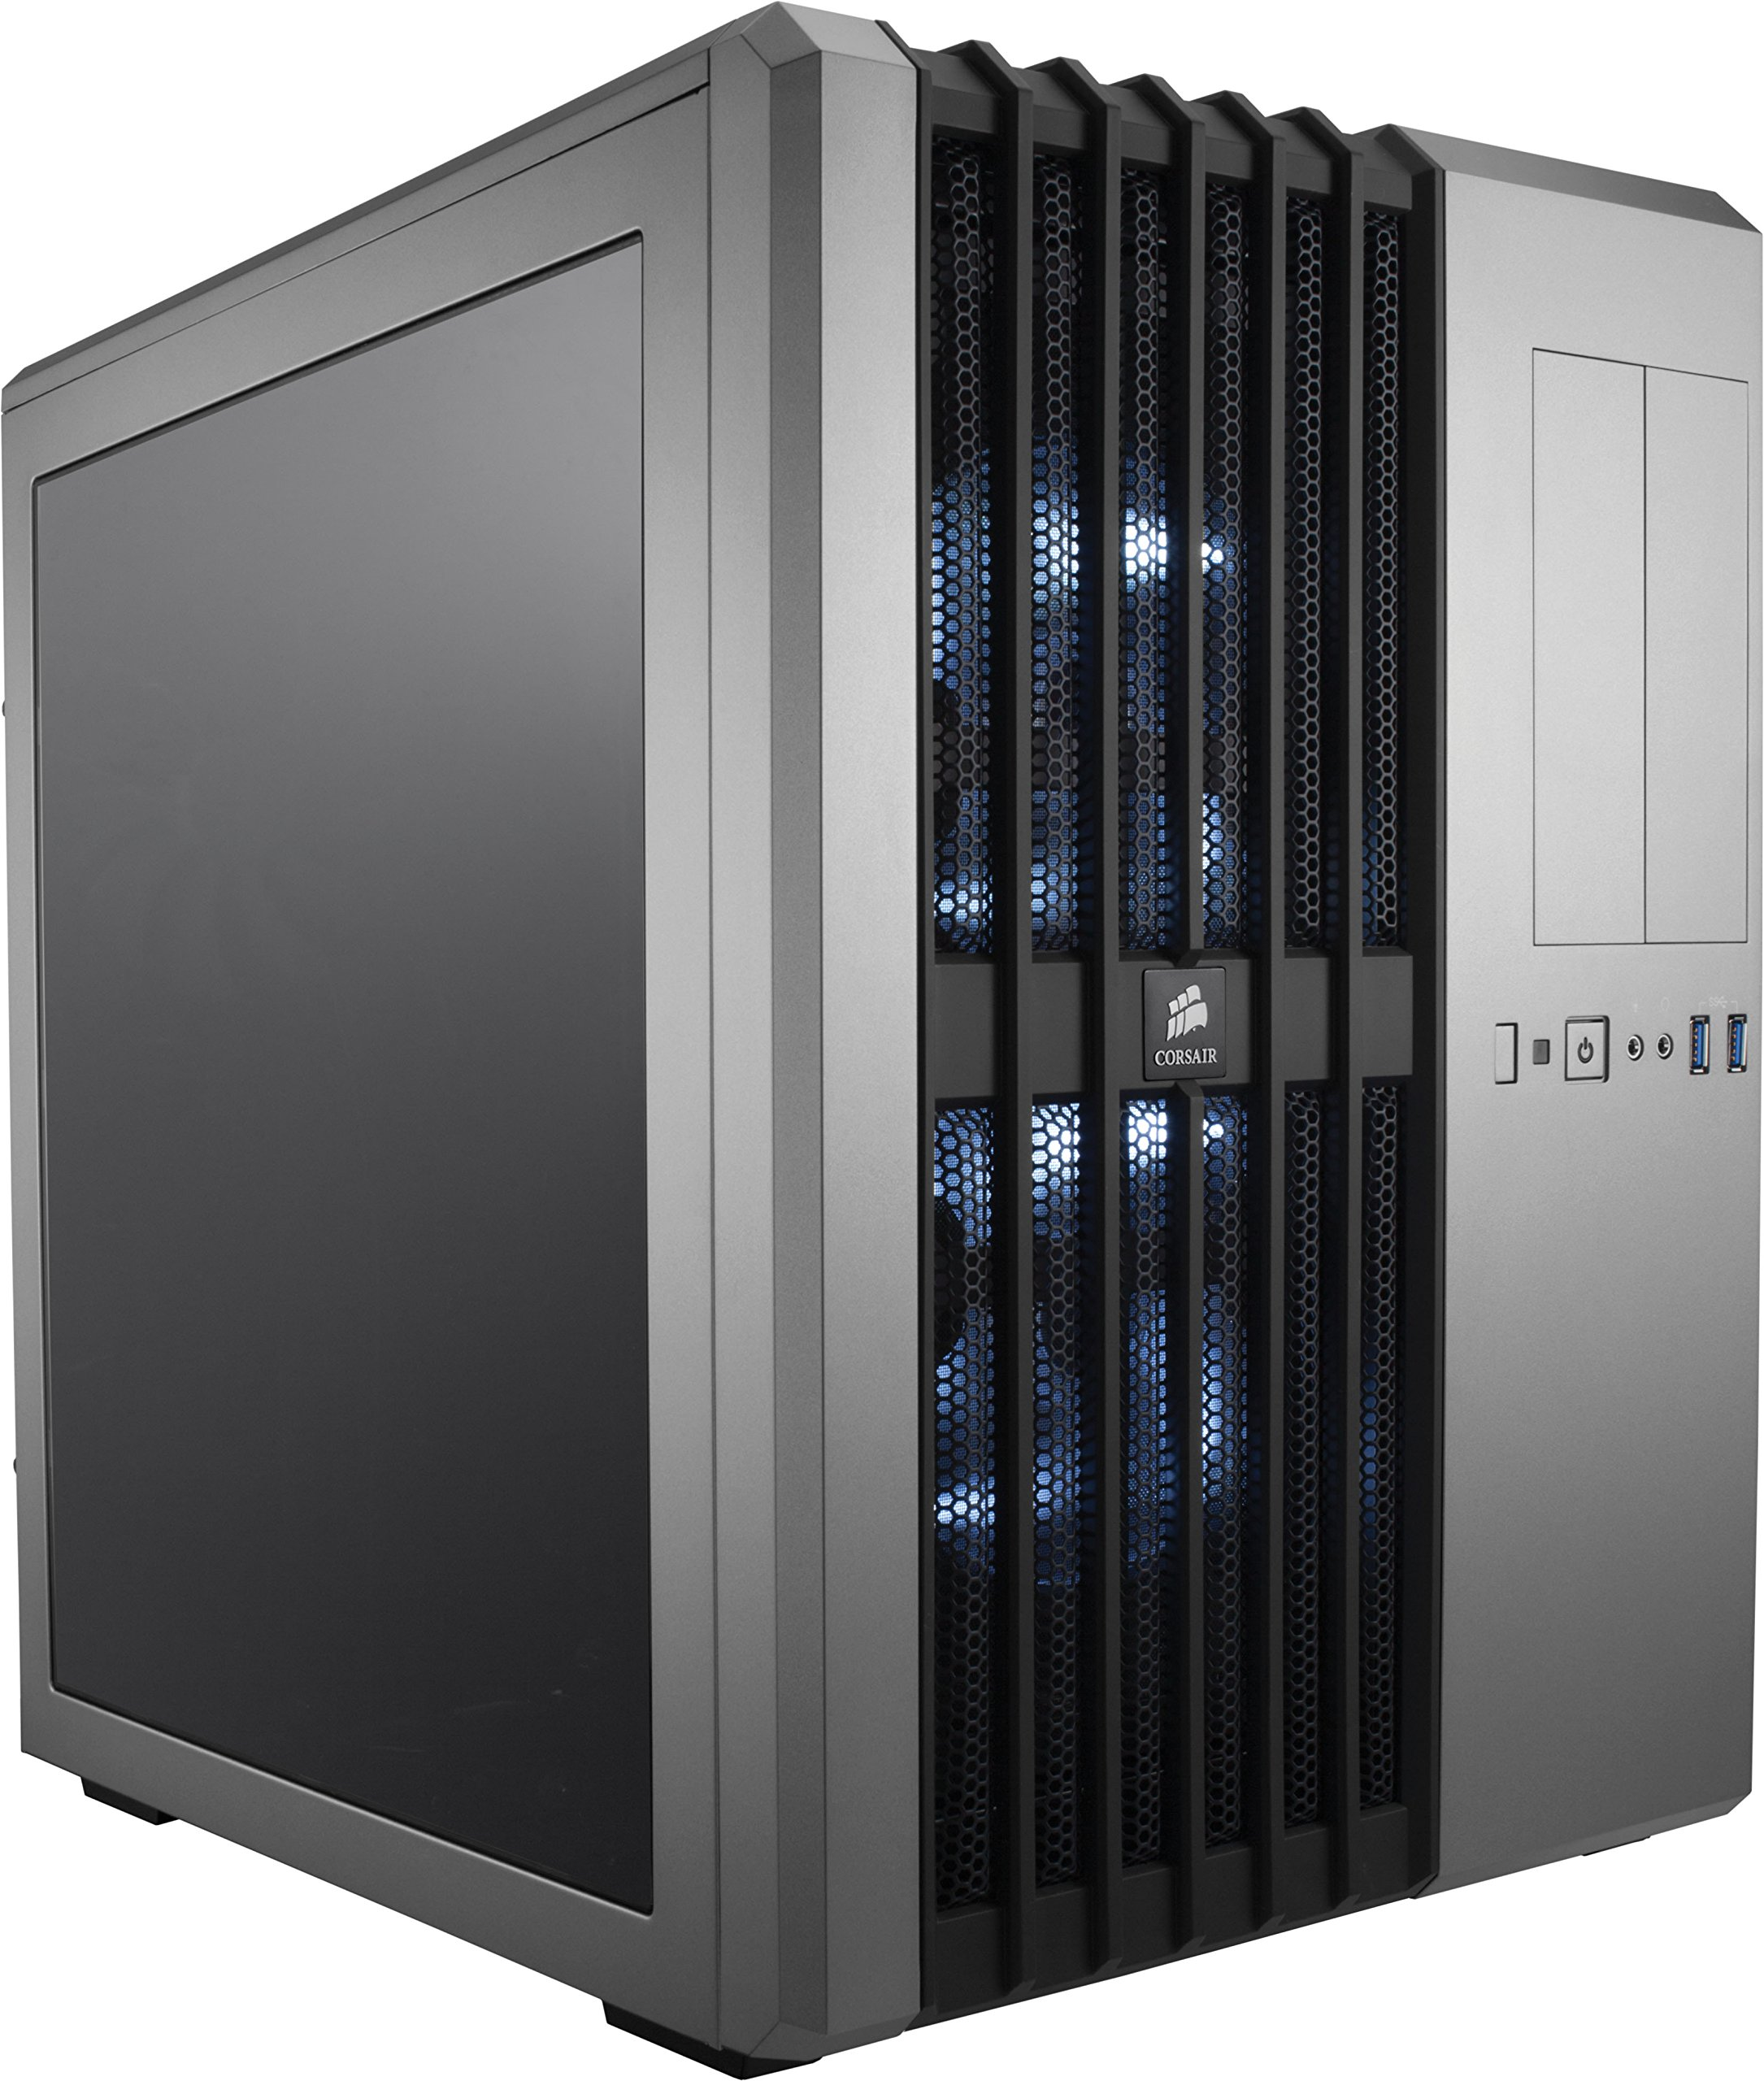 Corsair Carbide Series Air 540 ATX Cube Case - Steel Silver